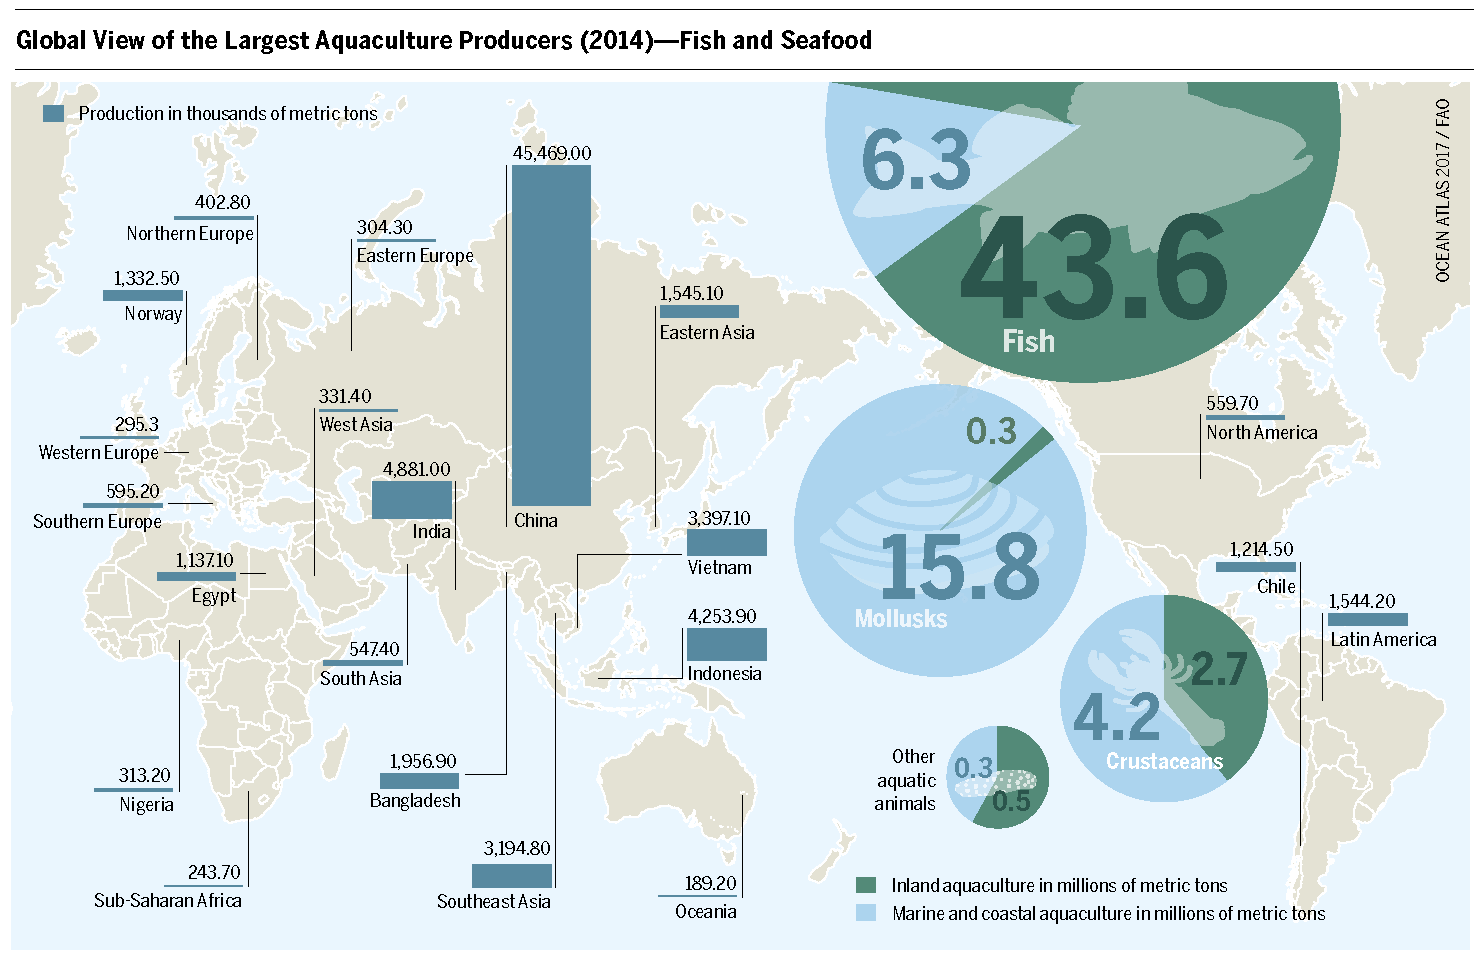 Maps and graphs meeresatlas global view of the largest aquaculture producers 2014fish and seafood download pdf png gumiabroncs Images